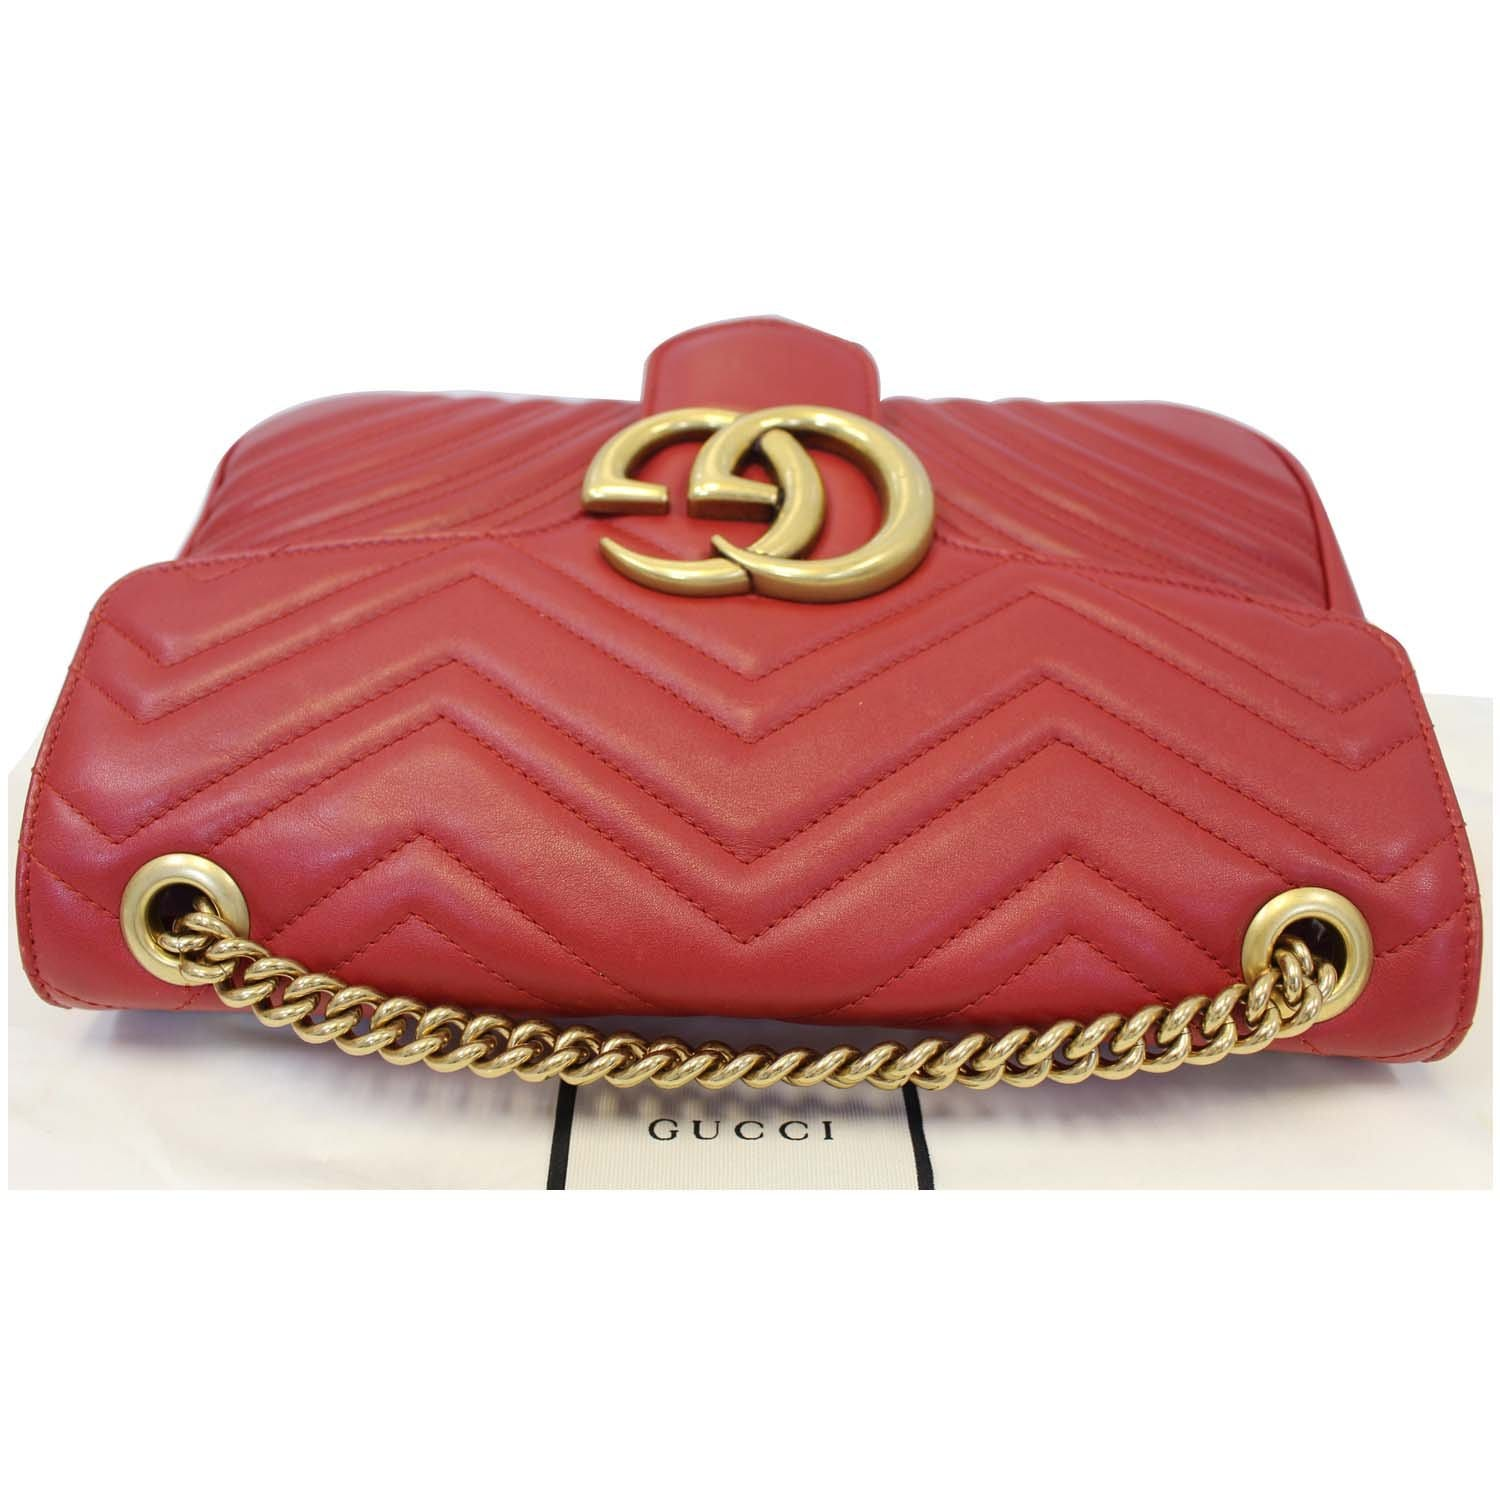 60fdcdb92 GUCCI GG Marmont Matelasse Red Leather Shoulder Bag